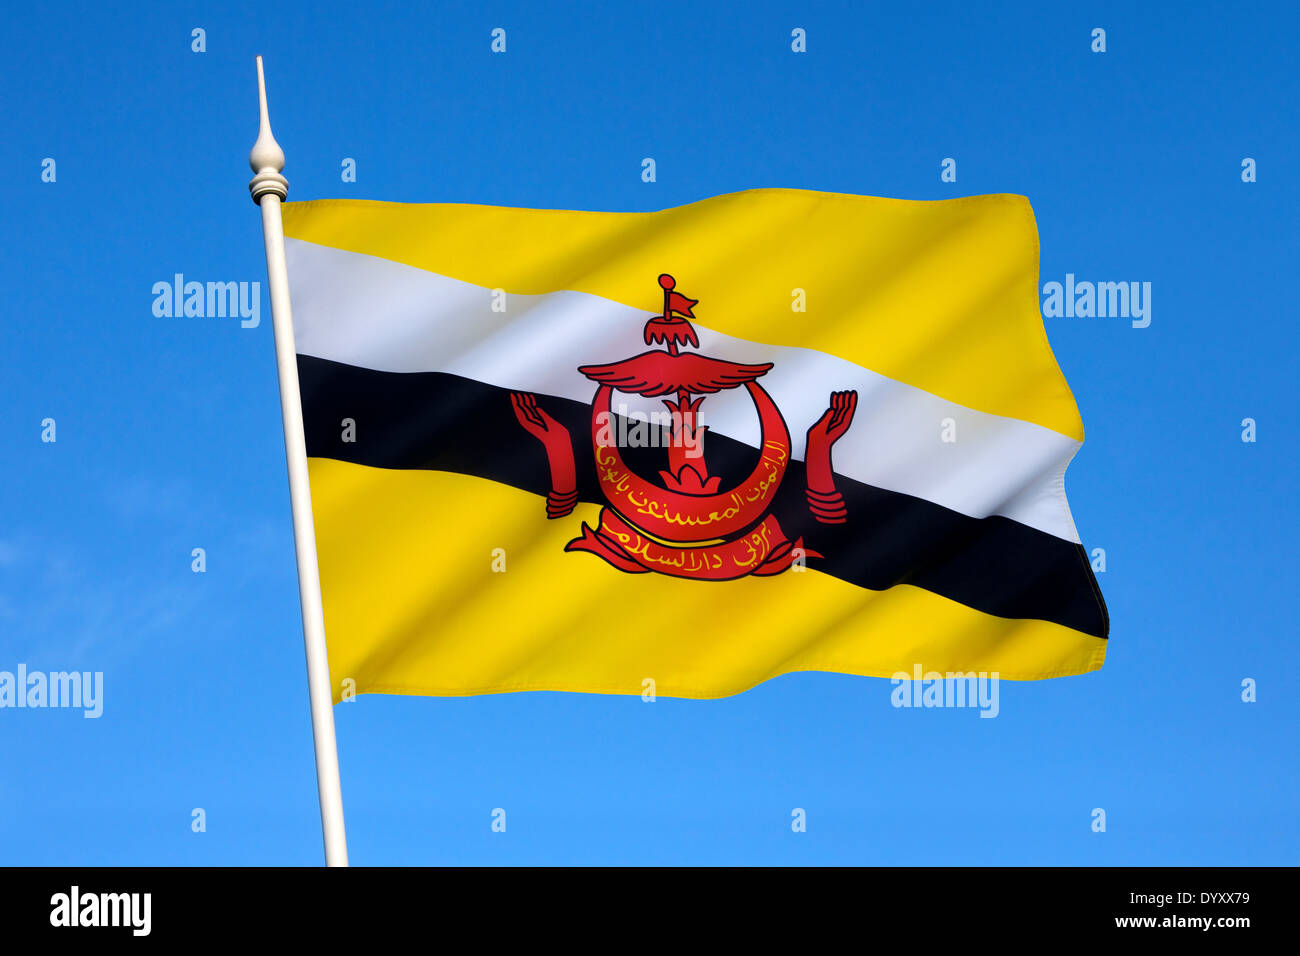 The national flag of The Sultanate of Brunei - Stock Image